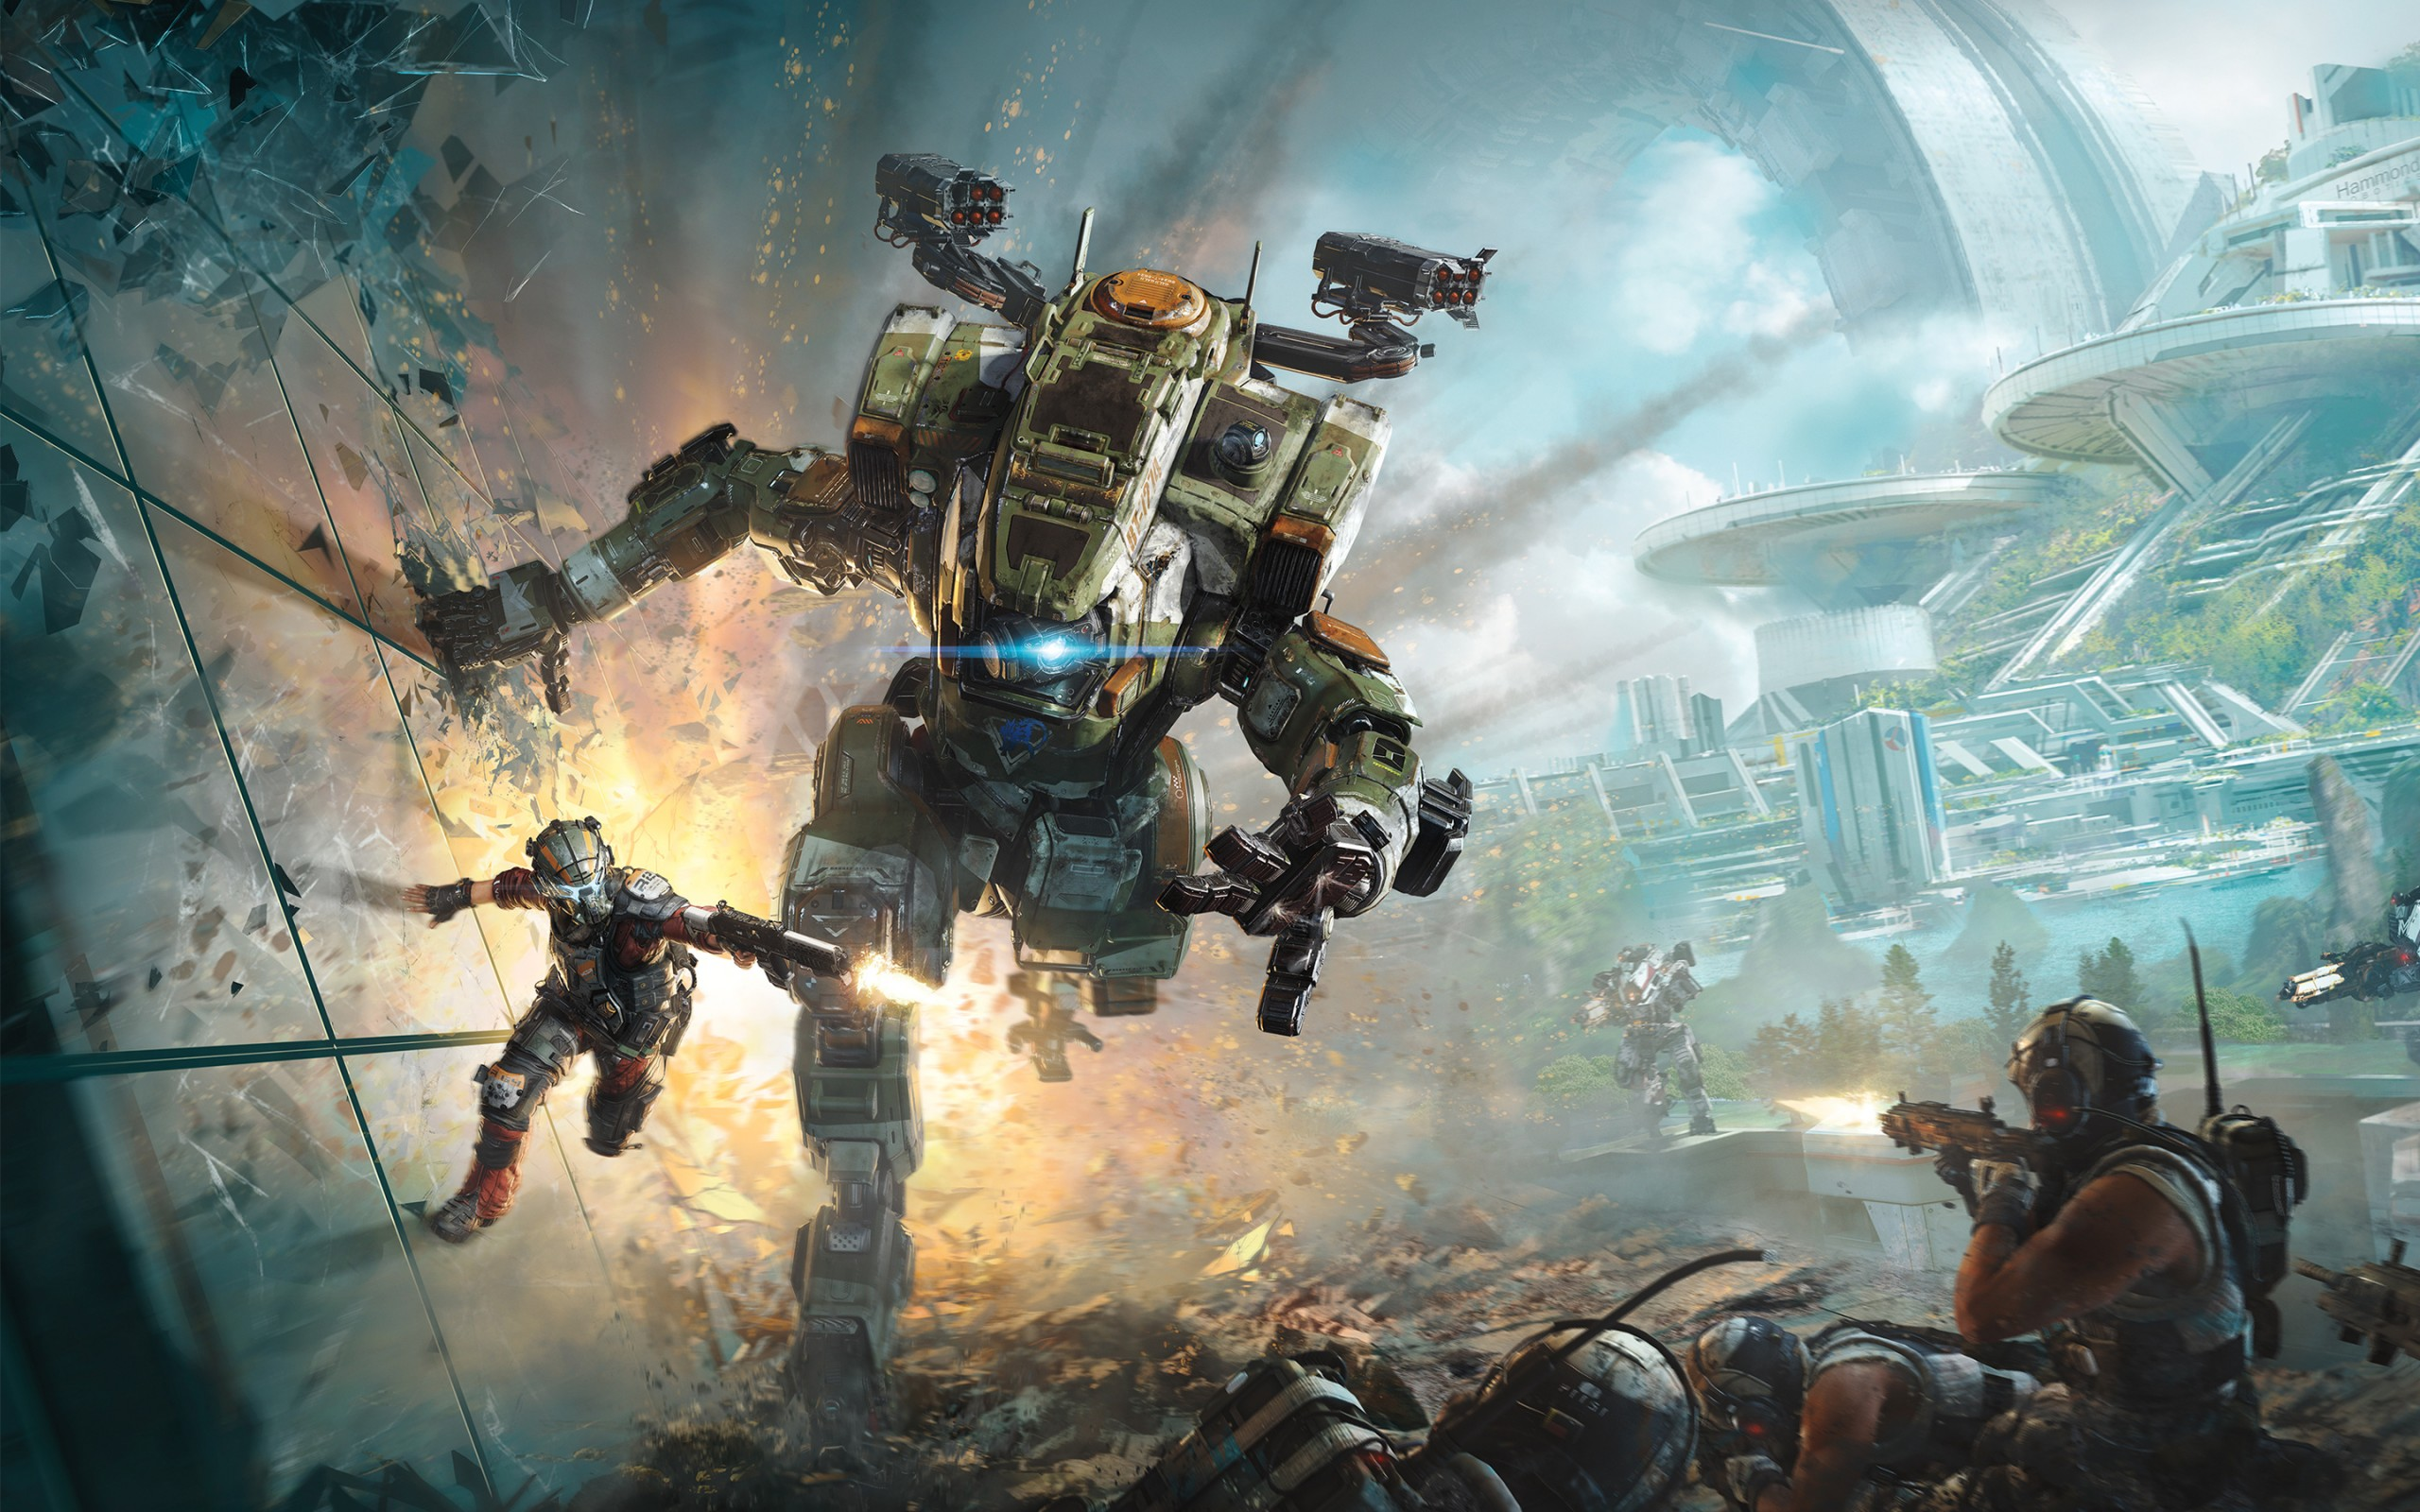 Fall Iphone 5 Wallpaper Hd Titanfall 2 2016 Game 4k Wallpapers Hd Wallpapers Id